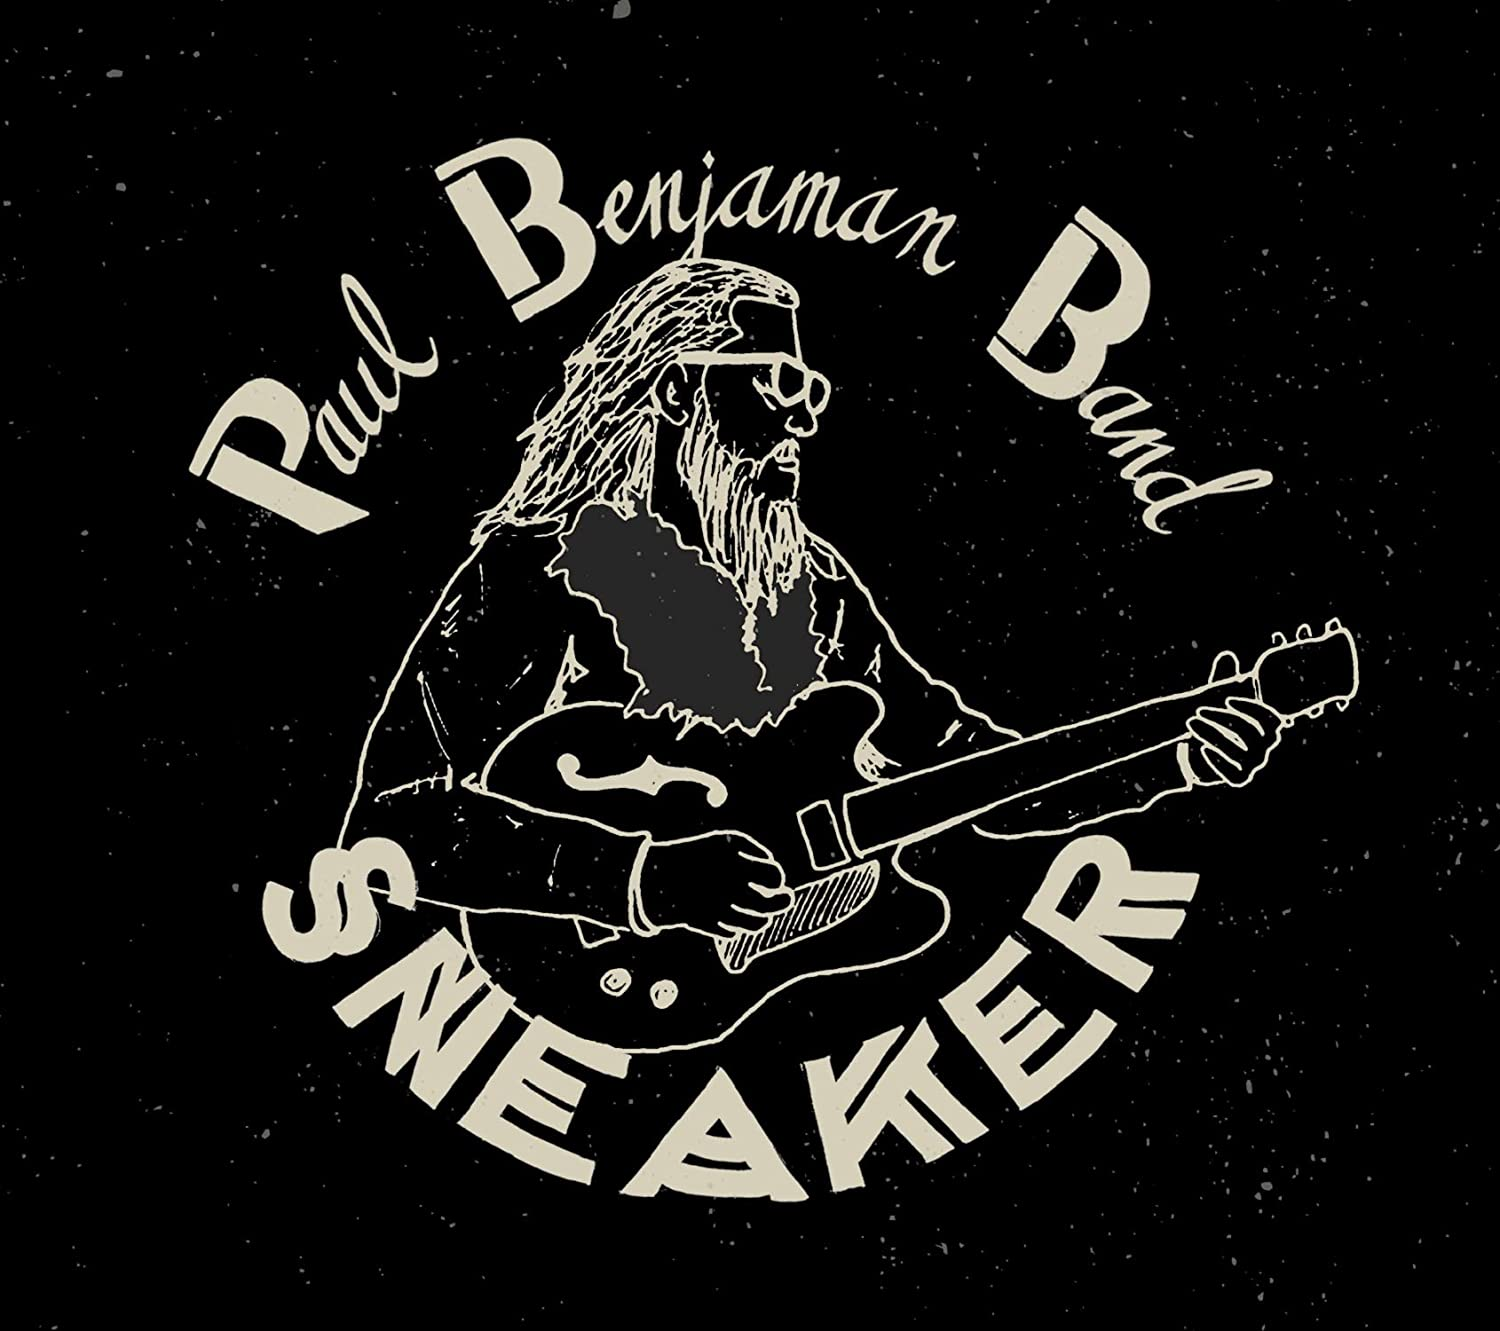 Paul Benjamin Band - Sneaker LP